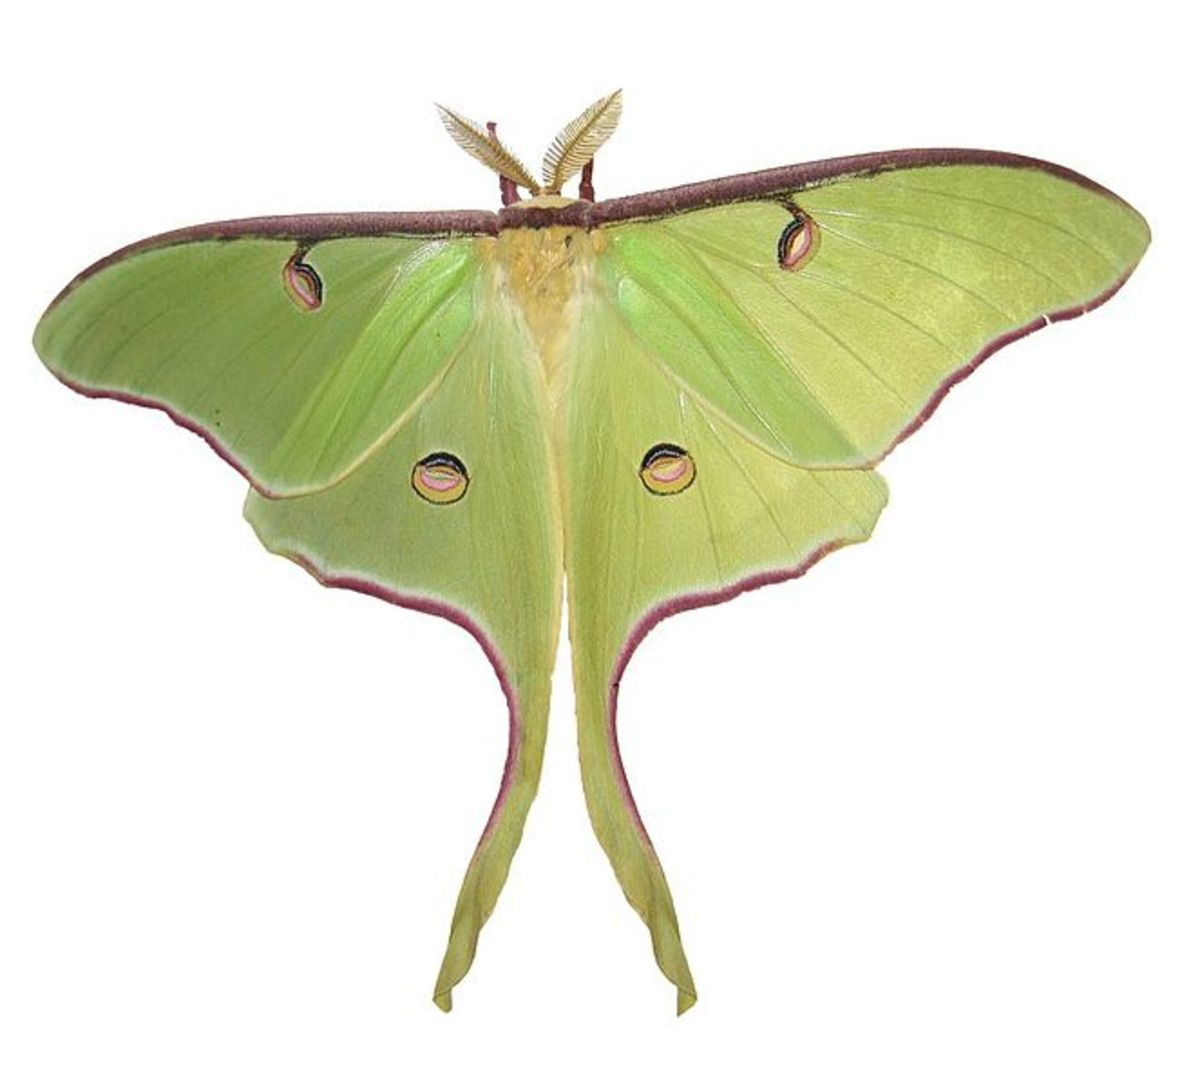 Some Interesting Facts about the Luna Moth in the U.S.